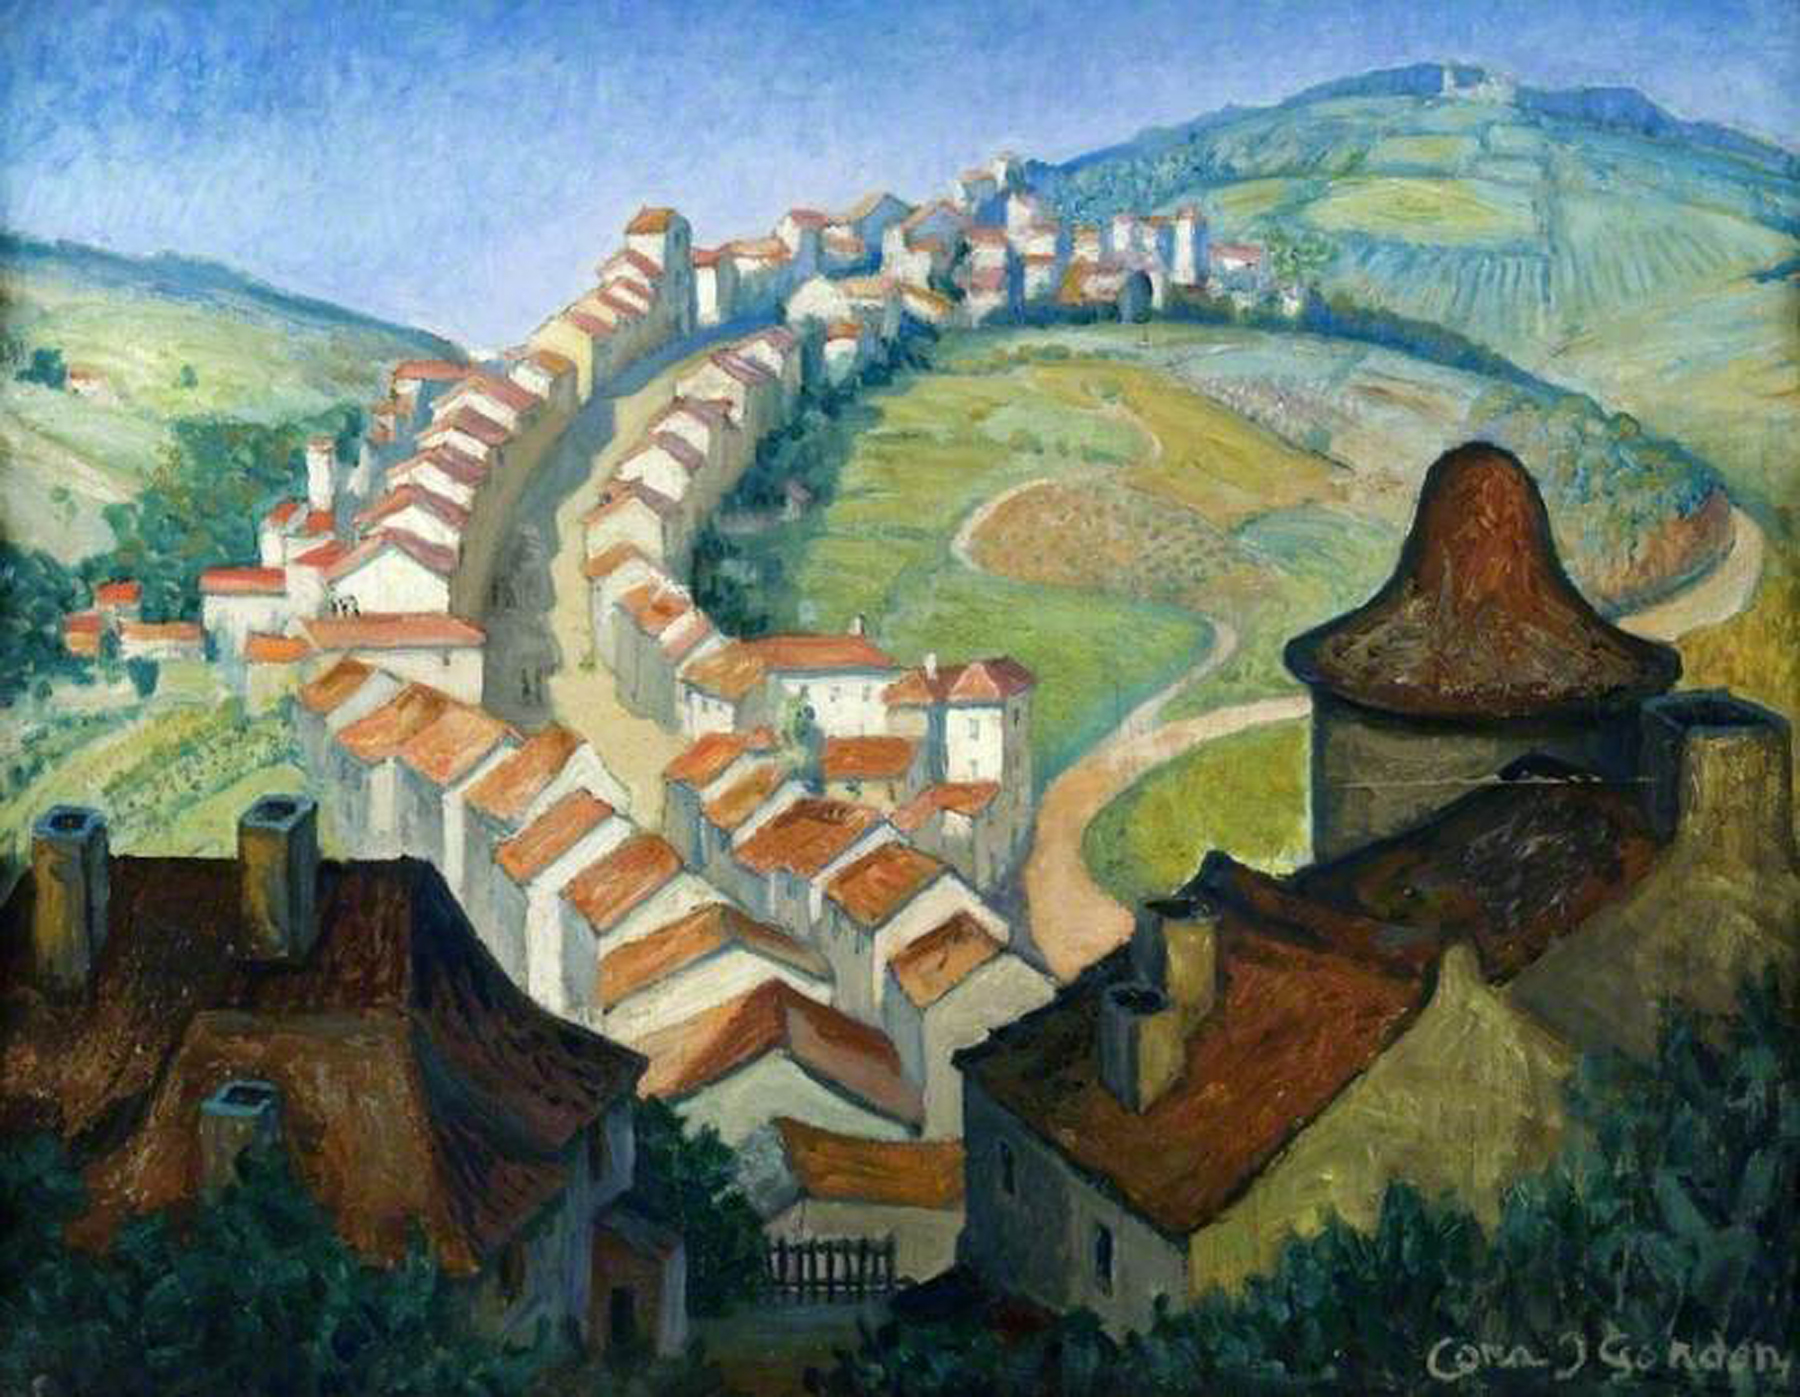 Gordon, Cora Josephine, 1879-1950; France: The Village on the Hills